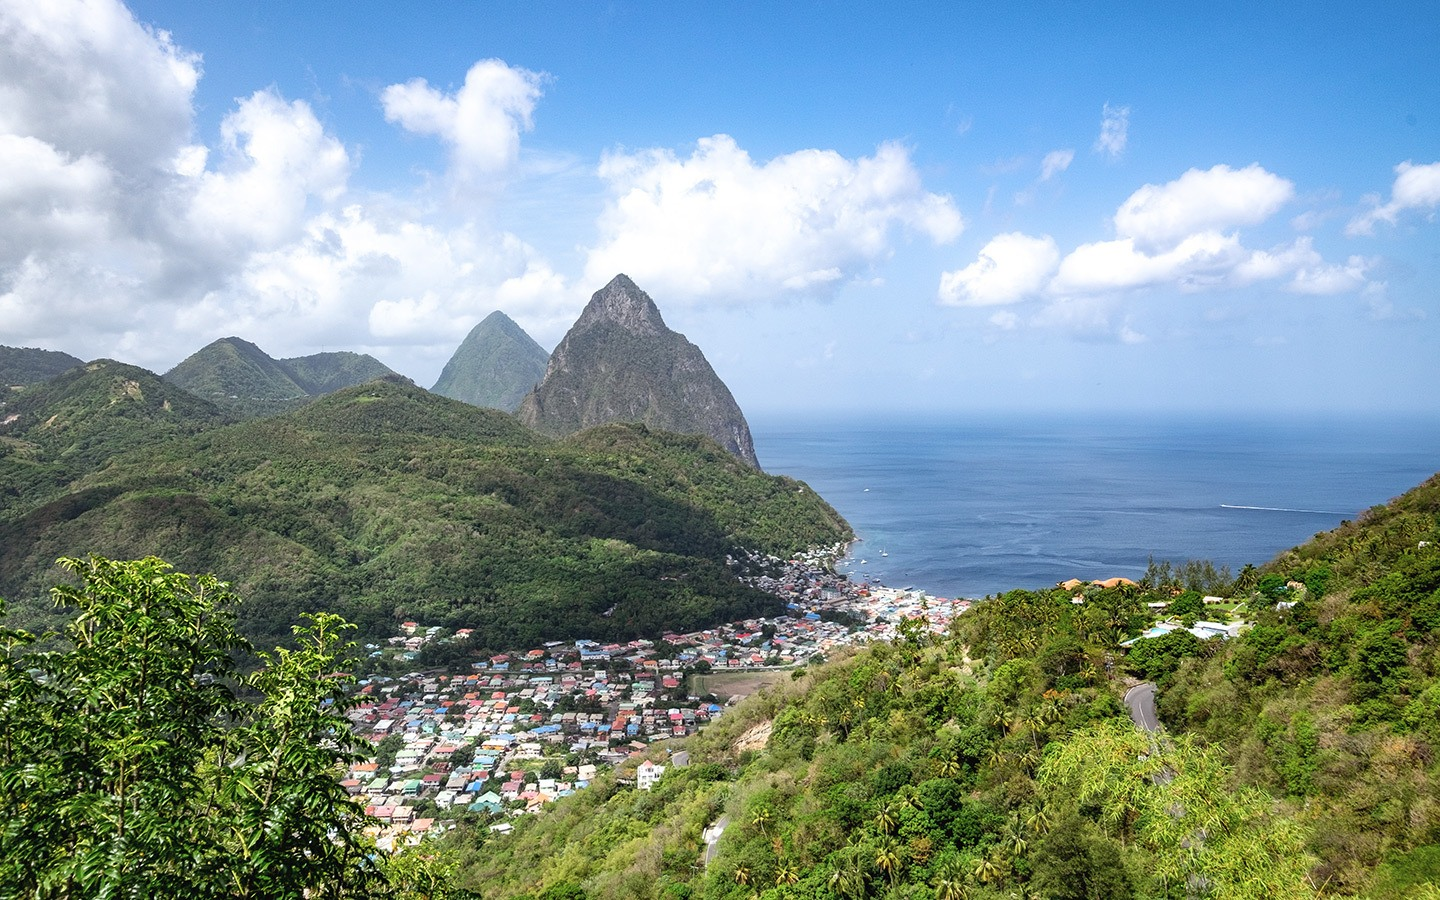 Scenery in Saint Lucia